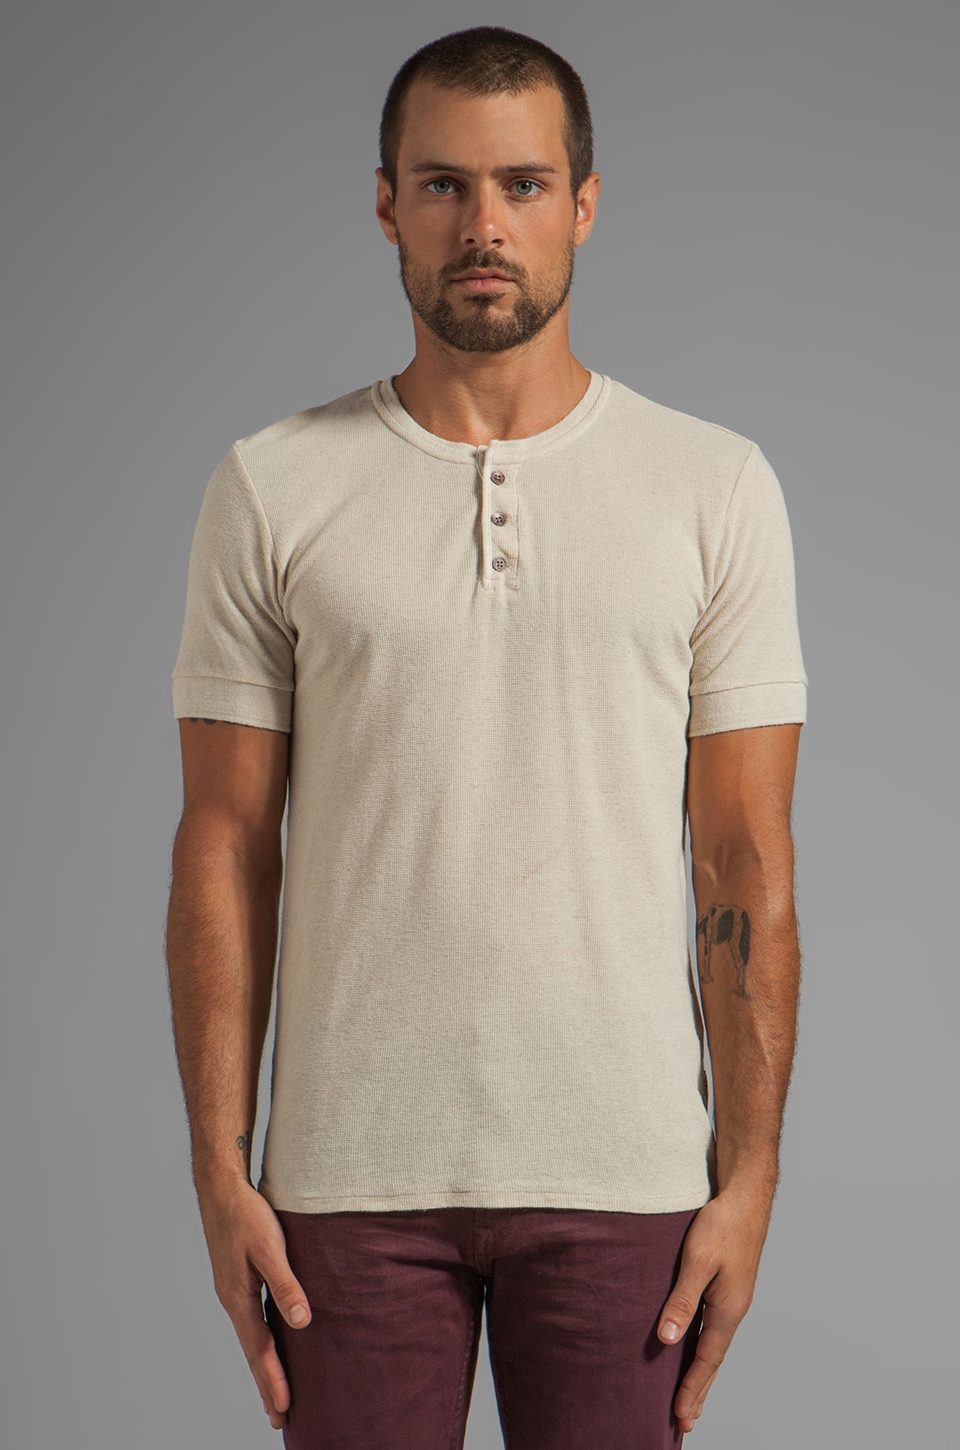 Scotch & Soda Short Sleeve Home Alone Henley in Ecru